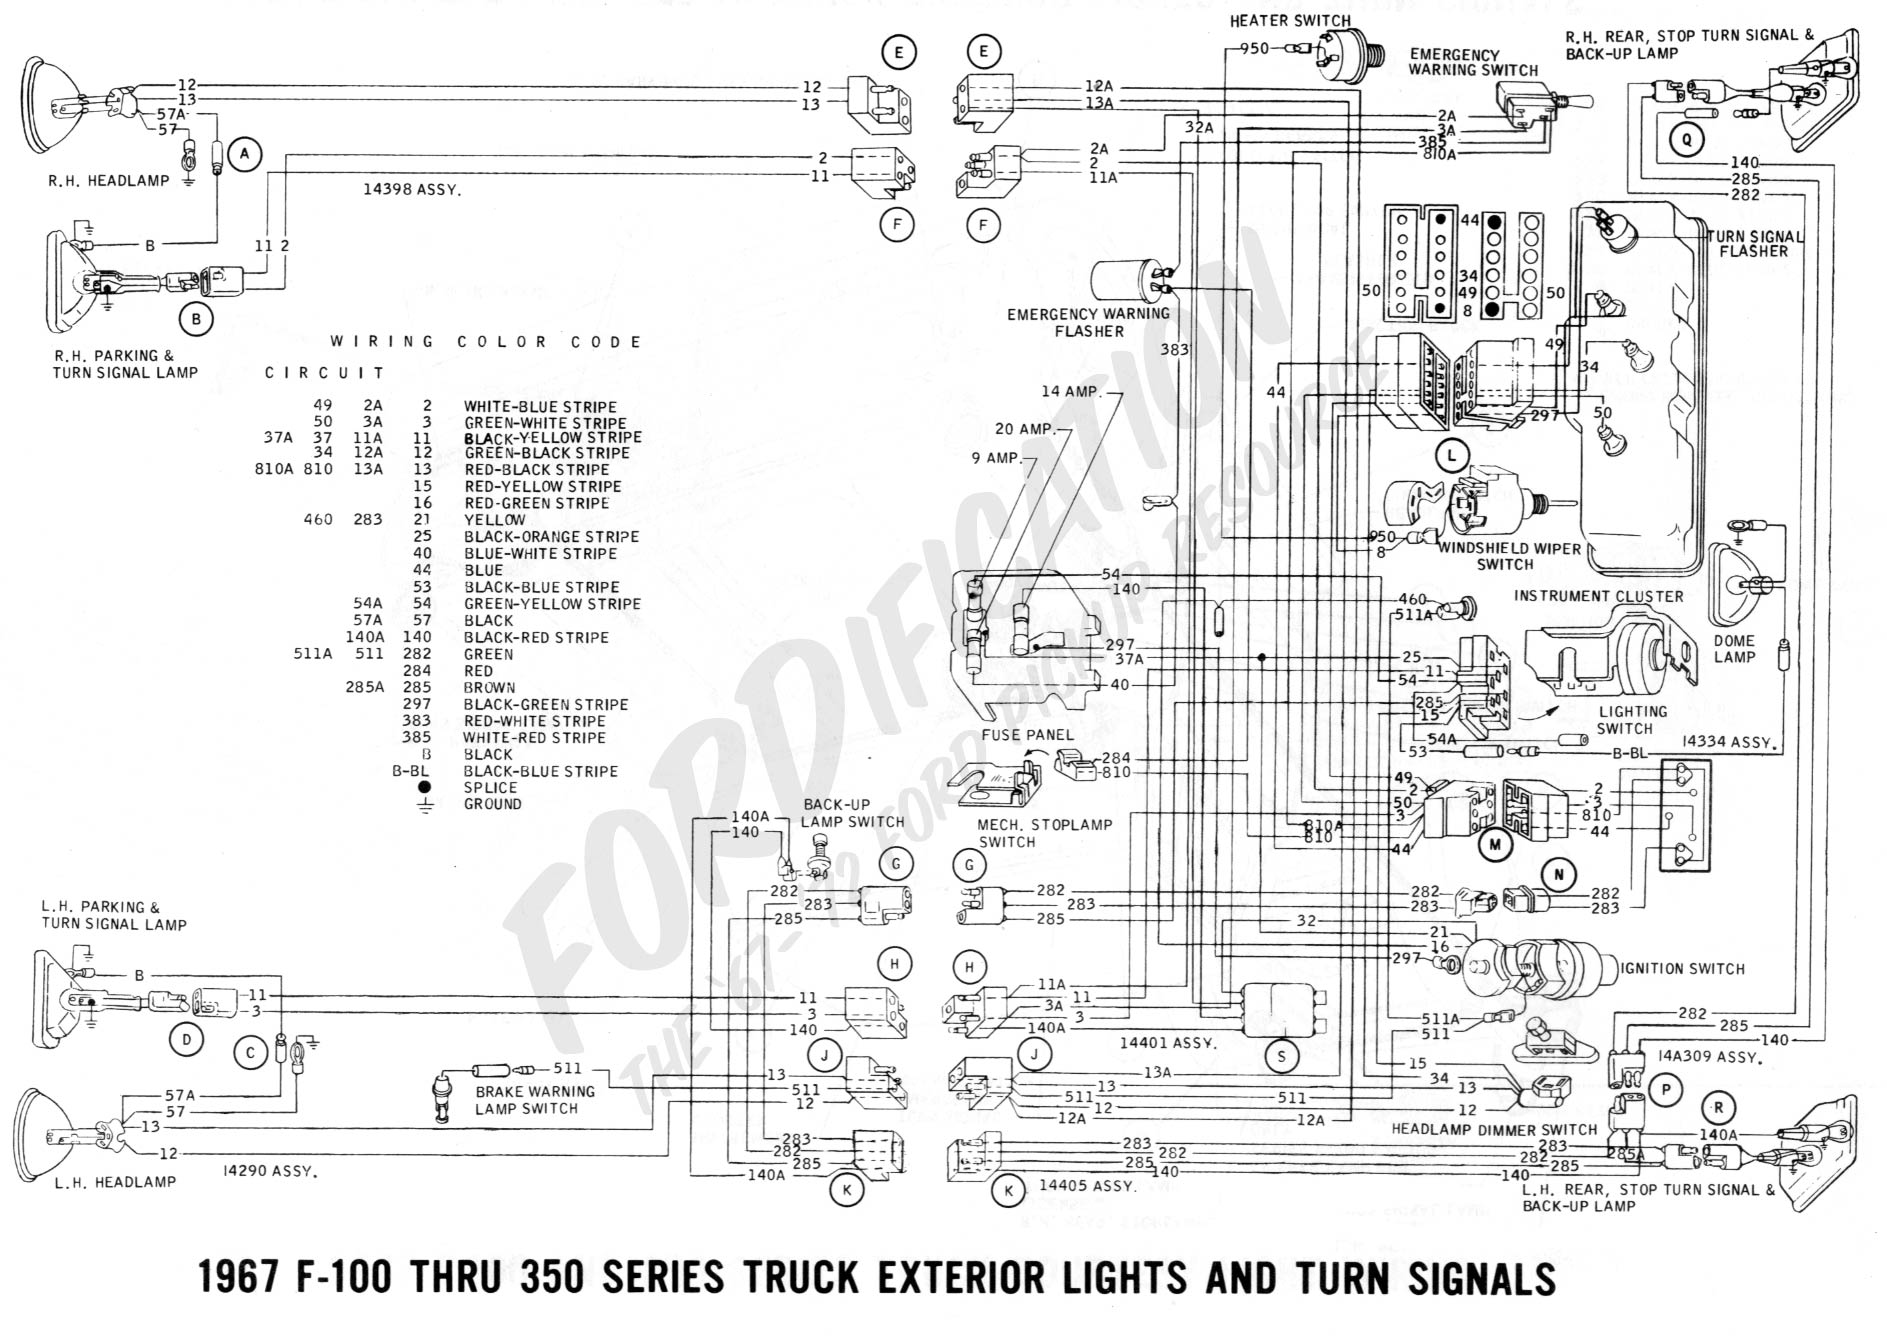 ford truck technical drawings and schematics section h wiring rh fordification com Ford F-150 Radio Wiring Diagram Ford F-150 Radio Wiring Diagram